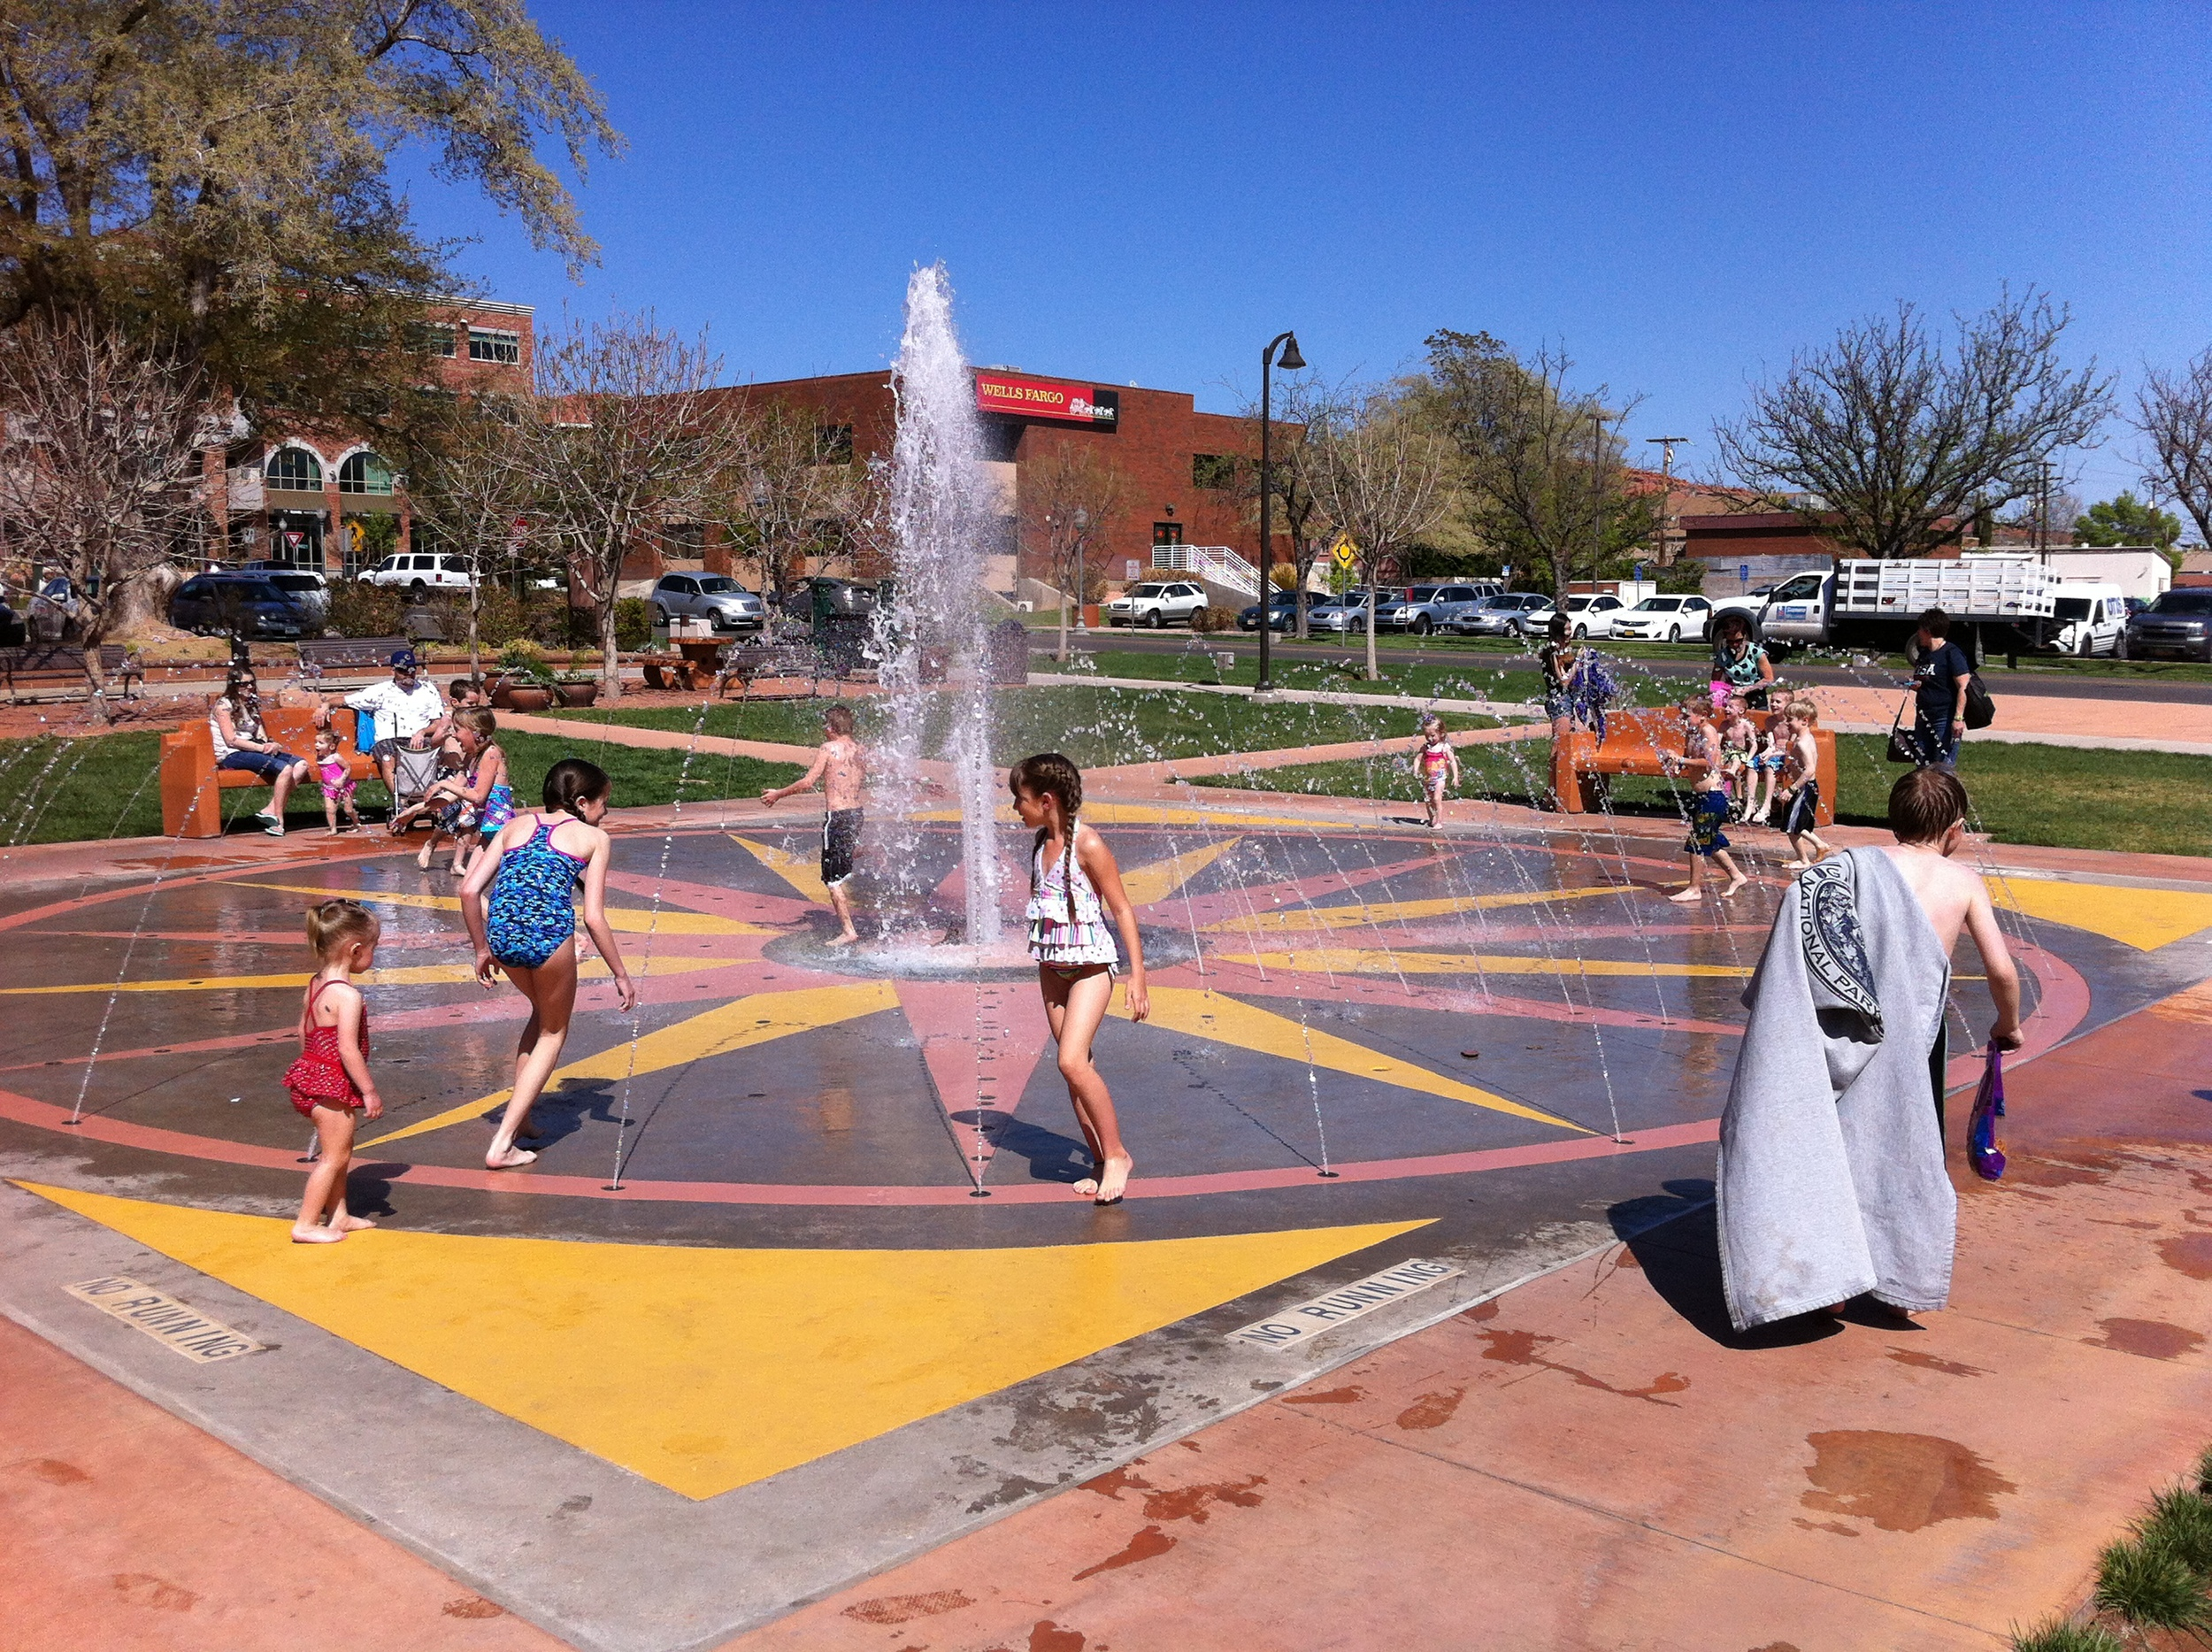 The water fountain is right next to the sidewalk and open to the street so pedestrian and drives can see all the fun being had by the families.